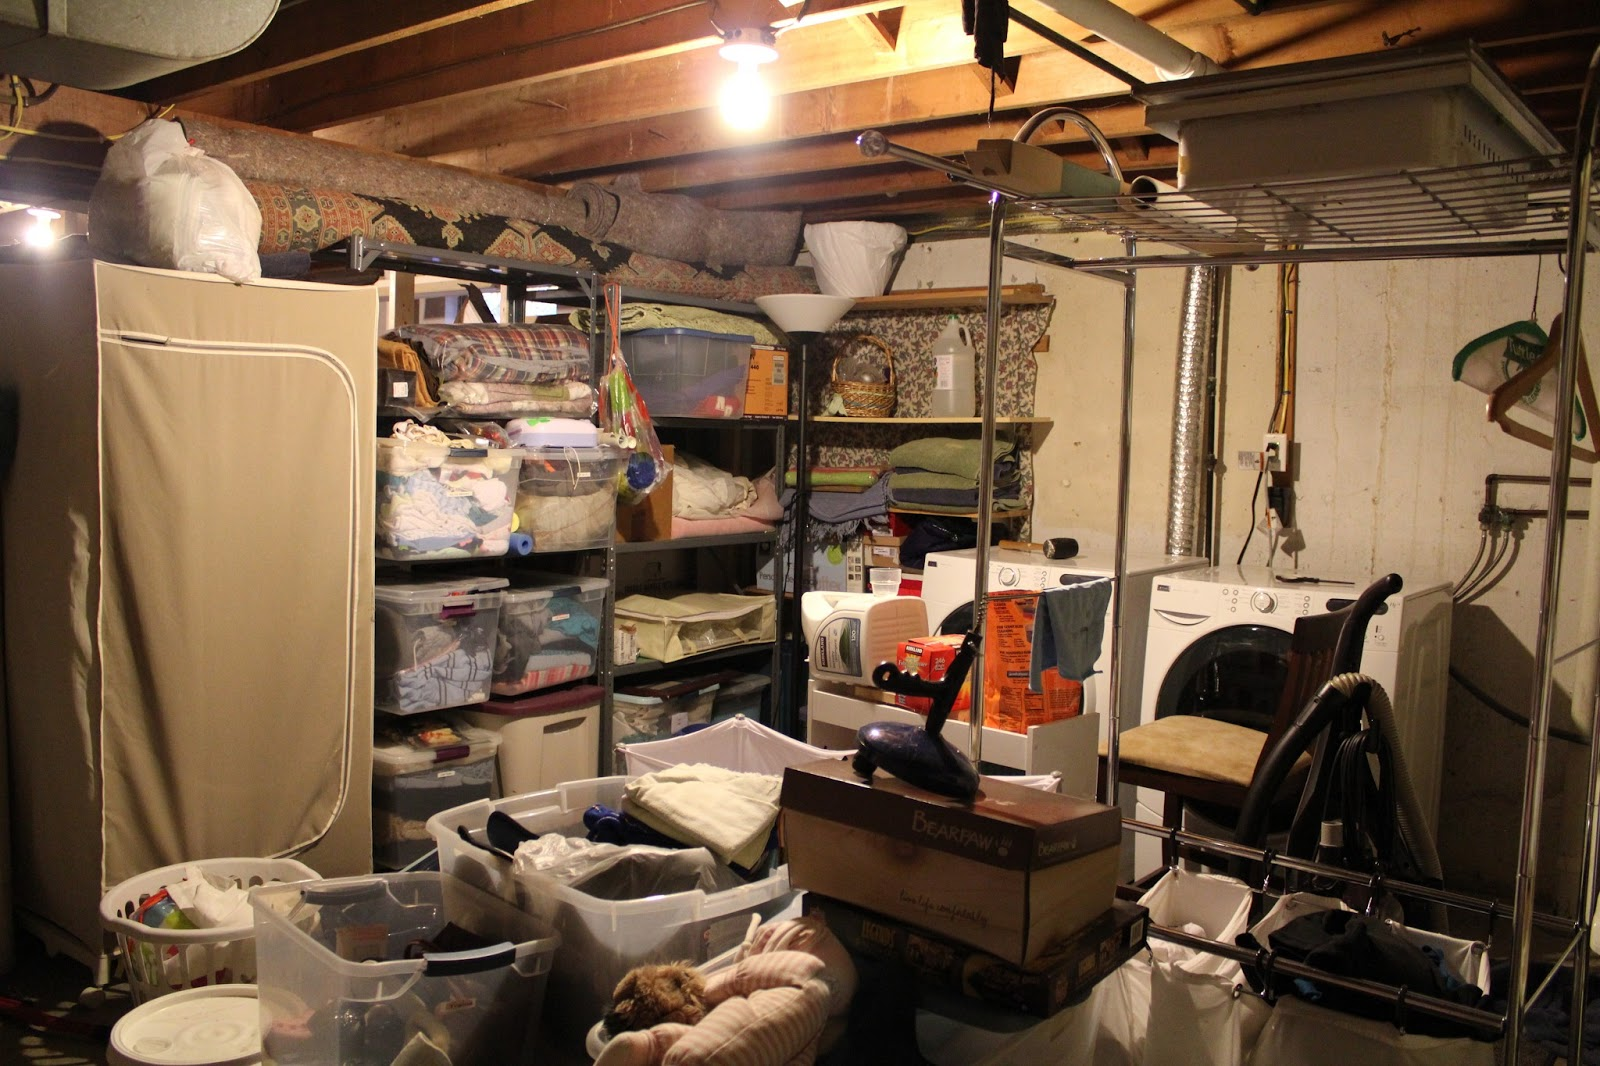 displaying 13 images for unfinished basement storage ideas